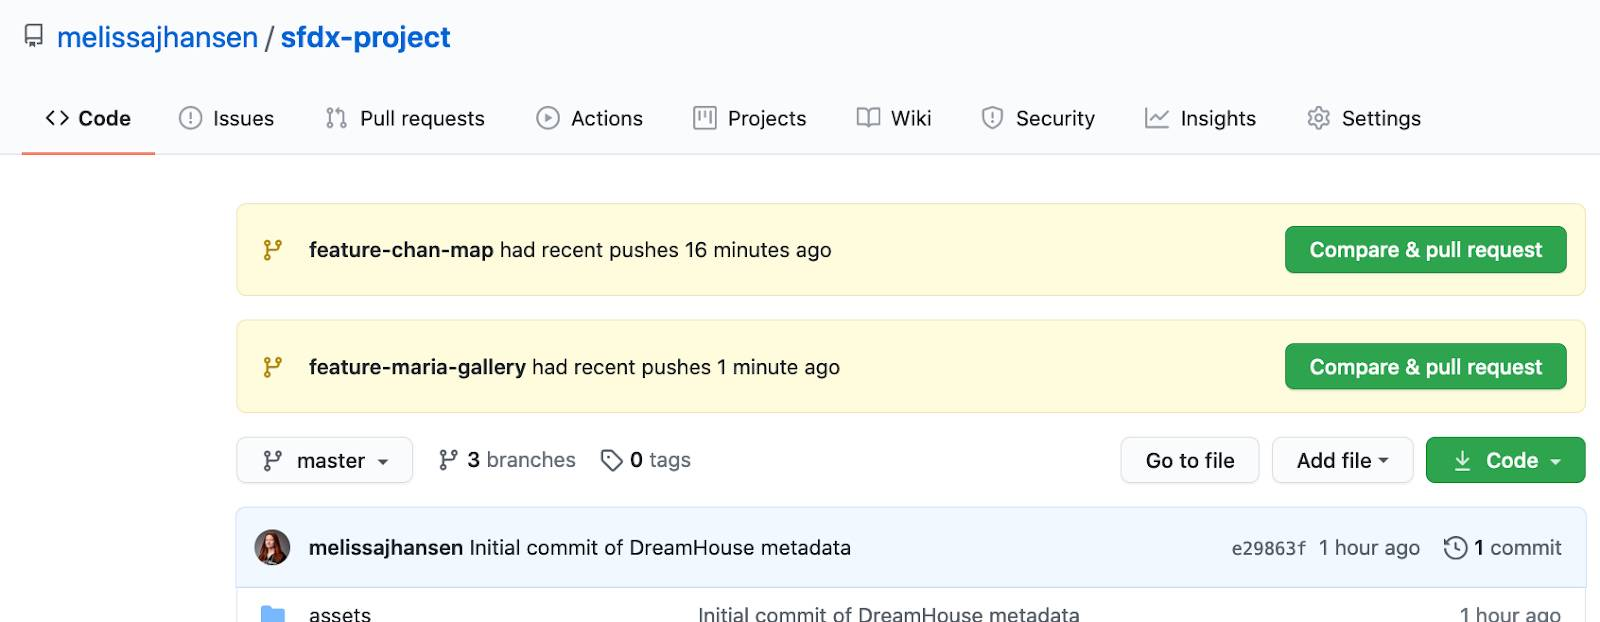 The GitHub interface, showing the Compare & pull request button.